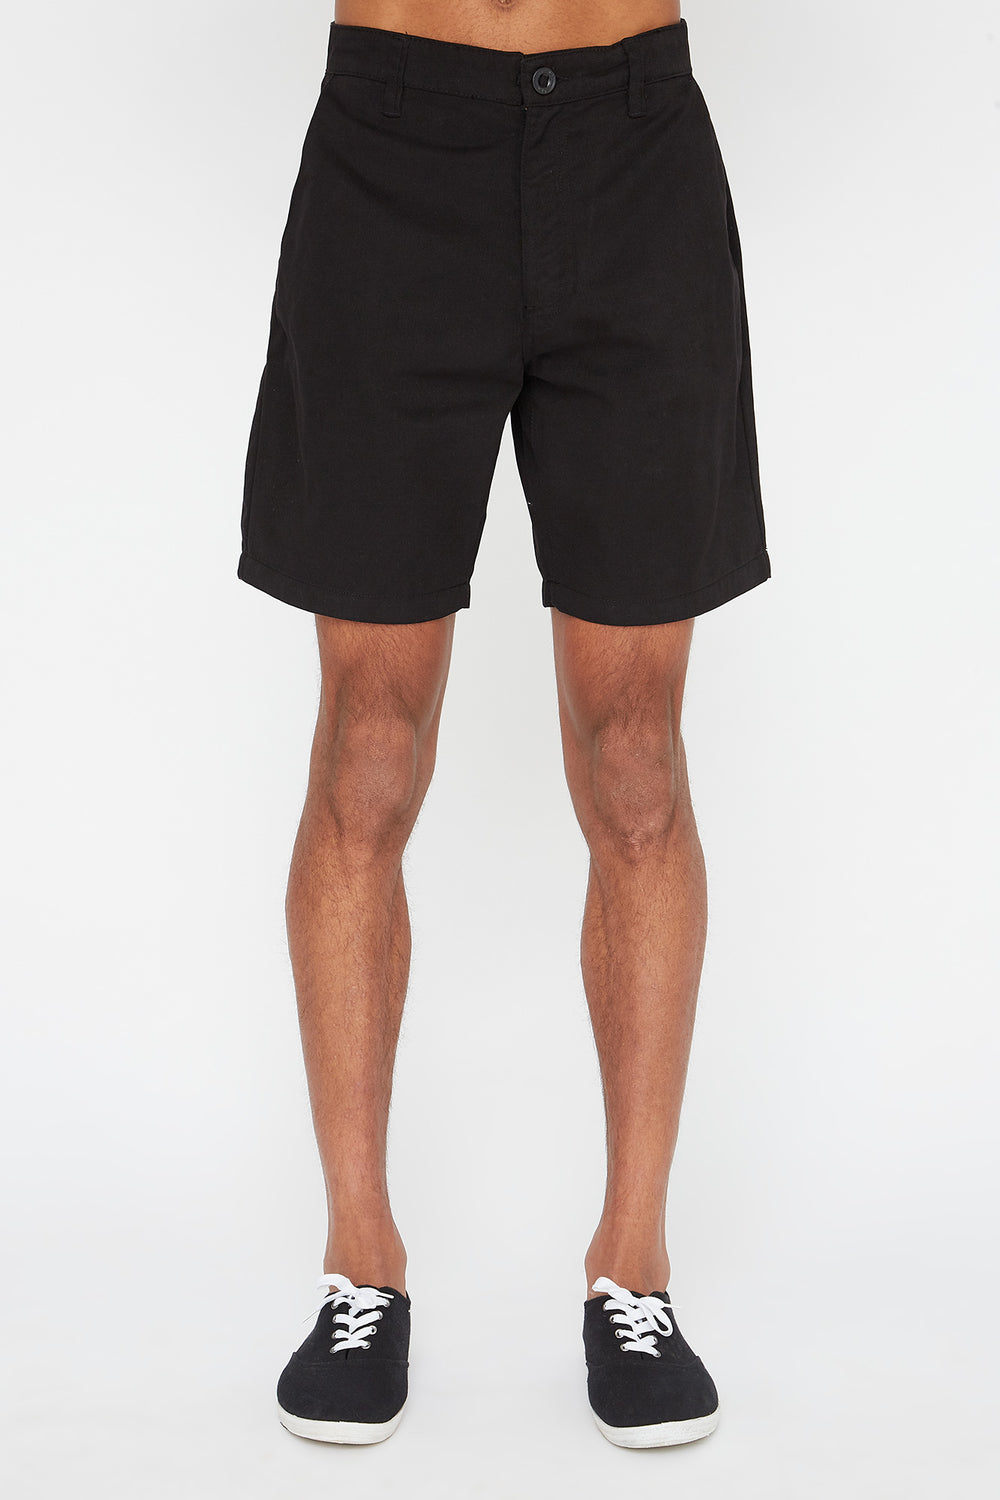 West49 Mens Slim Short Black